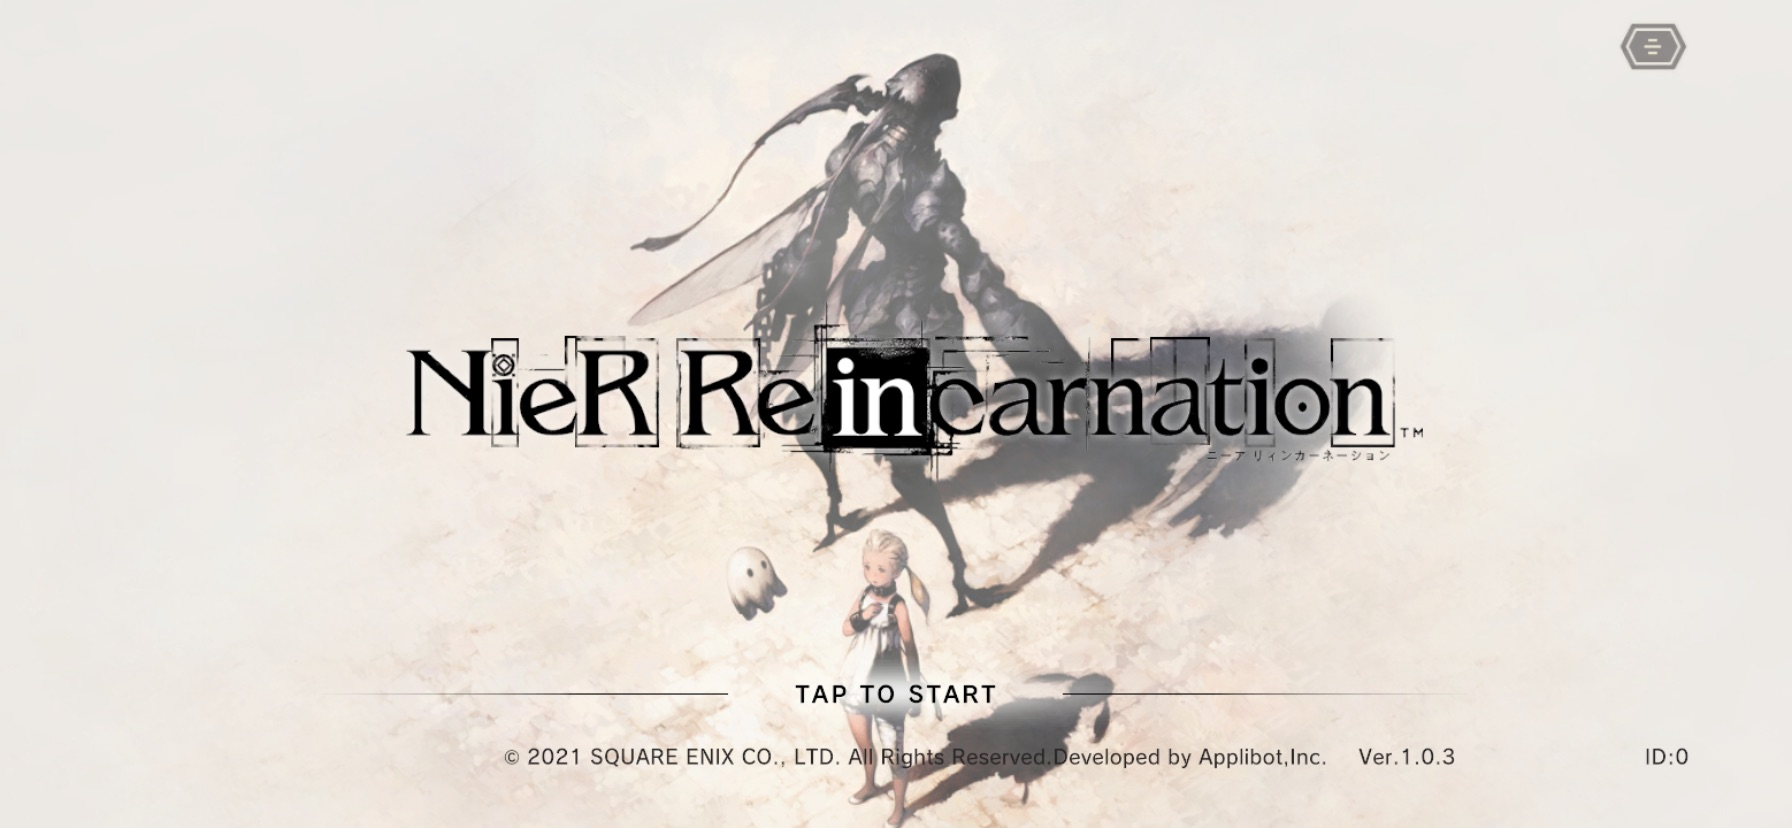 'NieR Re[in]carnation' Now Available for Pre-Order with an Expected November 6th Release Date